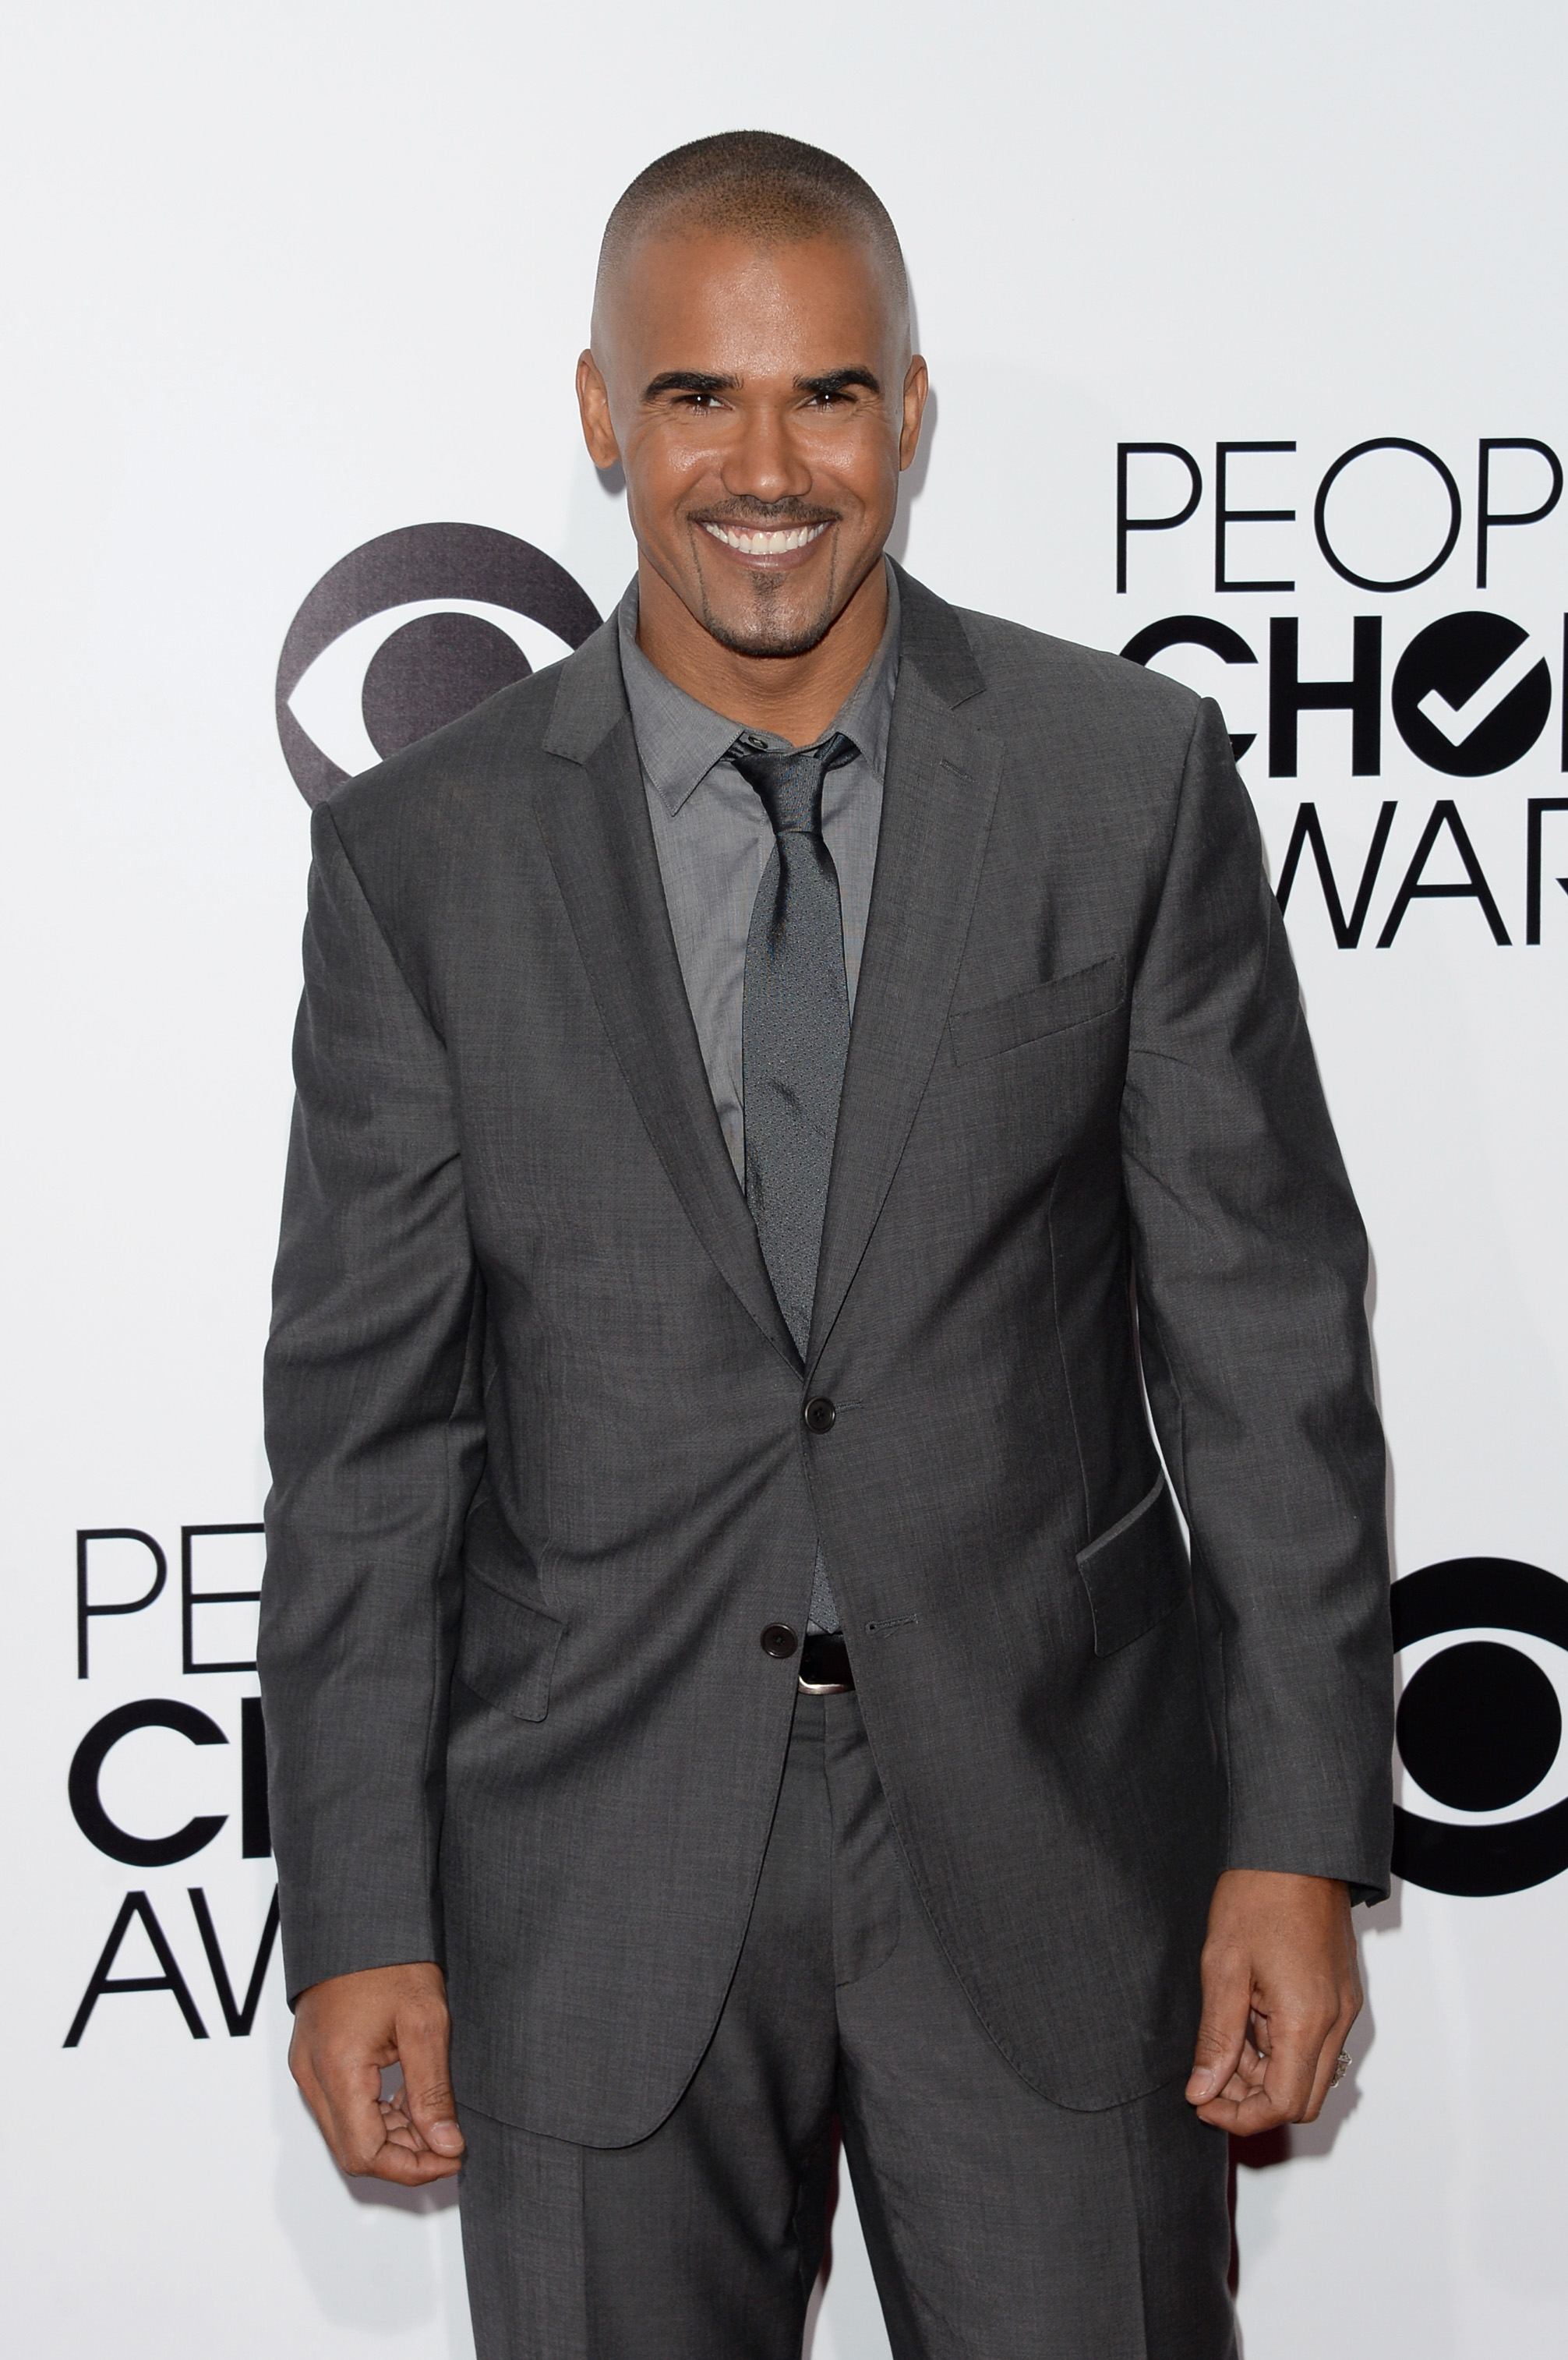 shemar moore gif huntshemar moore wife, shemar moore gif, shemar moore twitter, shemar moore movies, shemar moore kirsten vangsness, shemar moore height, shemar moore shop, shemar moore date, shemar moore and halle berry, shemar moore gif hunt, shemar moore house, shemar moore tumblr gif, shemar moore official website, shemar moore photo, shemar moore instagram, shemar moore биография, shemar moore criminal minds, shemar moore leaves criminal mind, shemar moore expecting a baby, shemar moore child